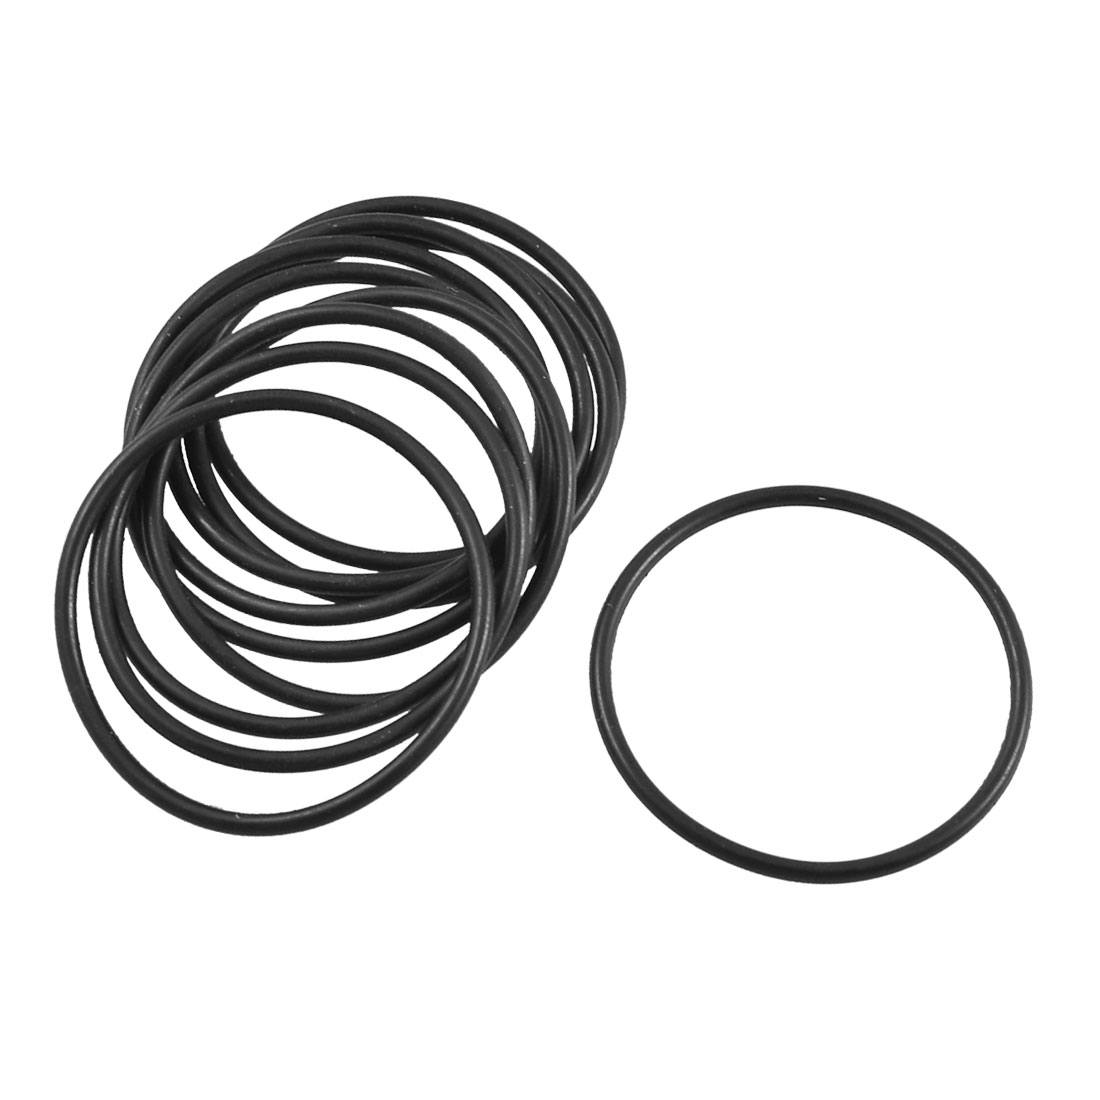 10 Pcs Black Rubber Oil Filter O Ring Sealing Gaskets 31.5mm x 1.8mm